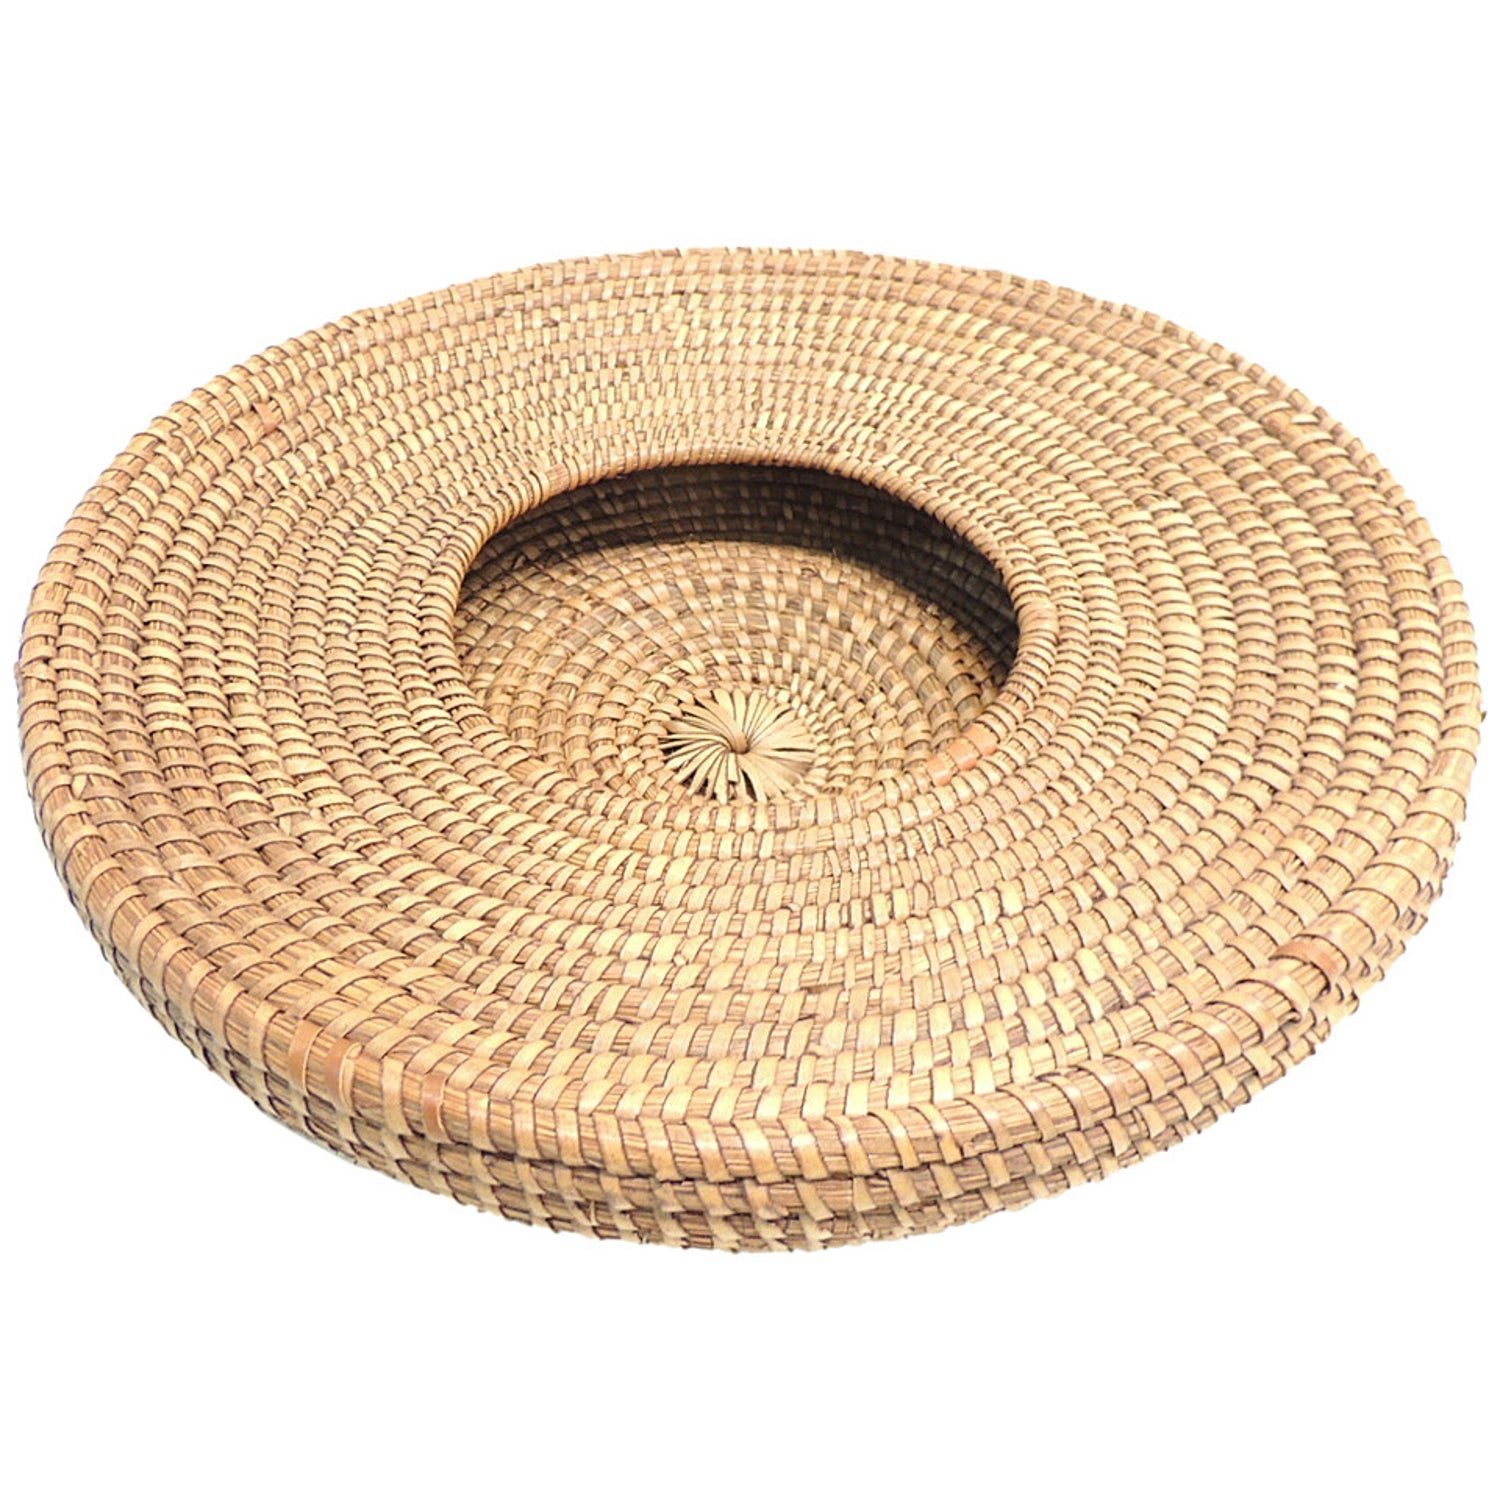 Fantastic Round Baskets Wall Decor Ideas - The Wall Art Decorations ...